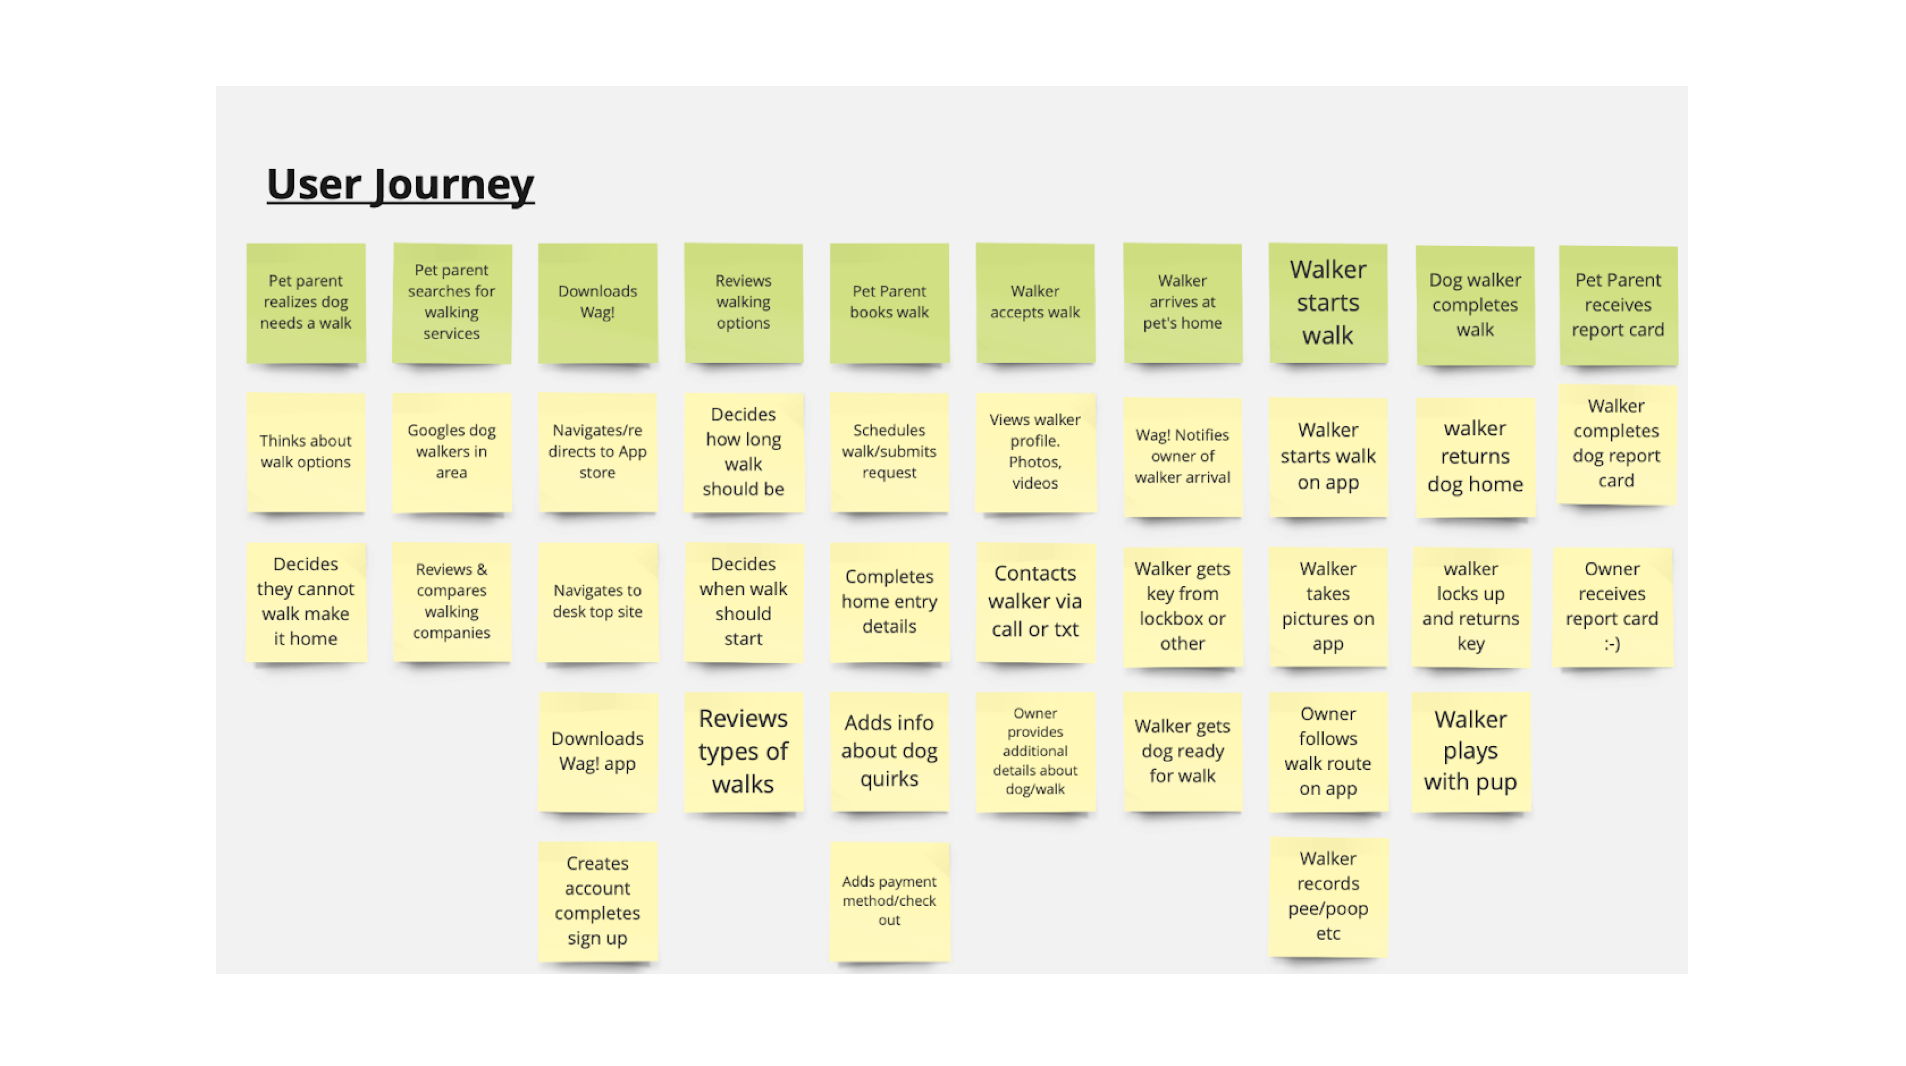 User Journey Insights:The main flow of booking a service needs to stay short and straight forward. The existing flow for Wag solves the users problem well, I do not want to convolute that process. I will need to solve for introducing new trust without changing the core feature.